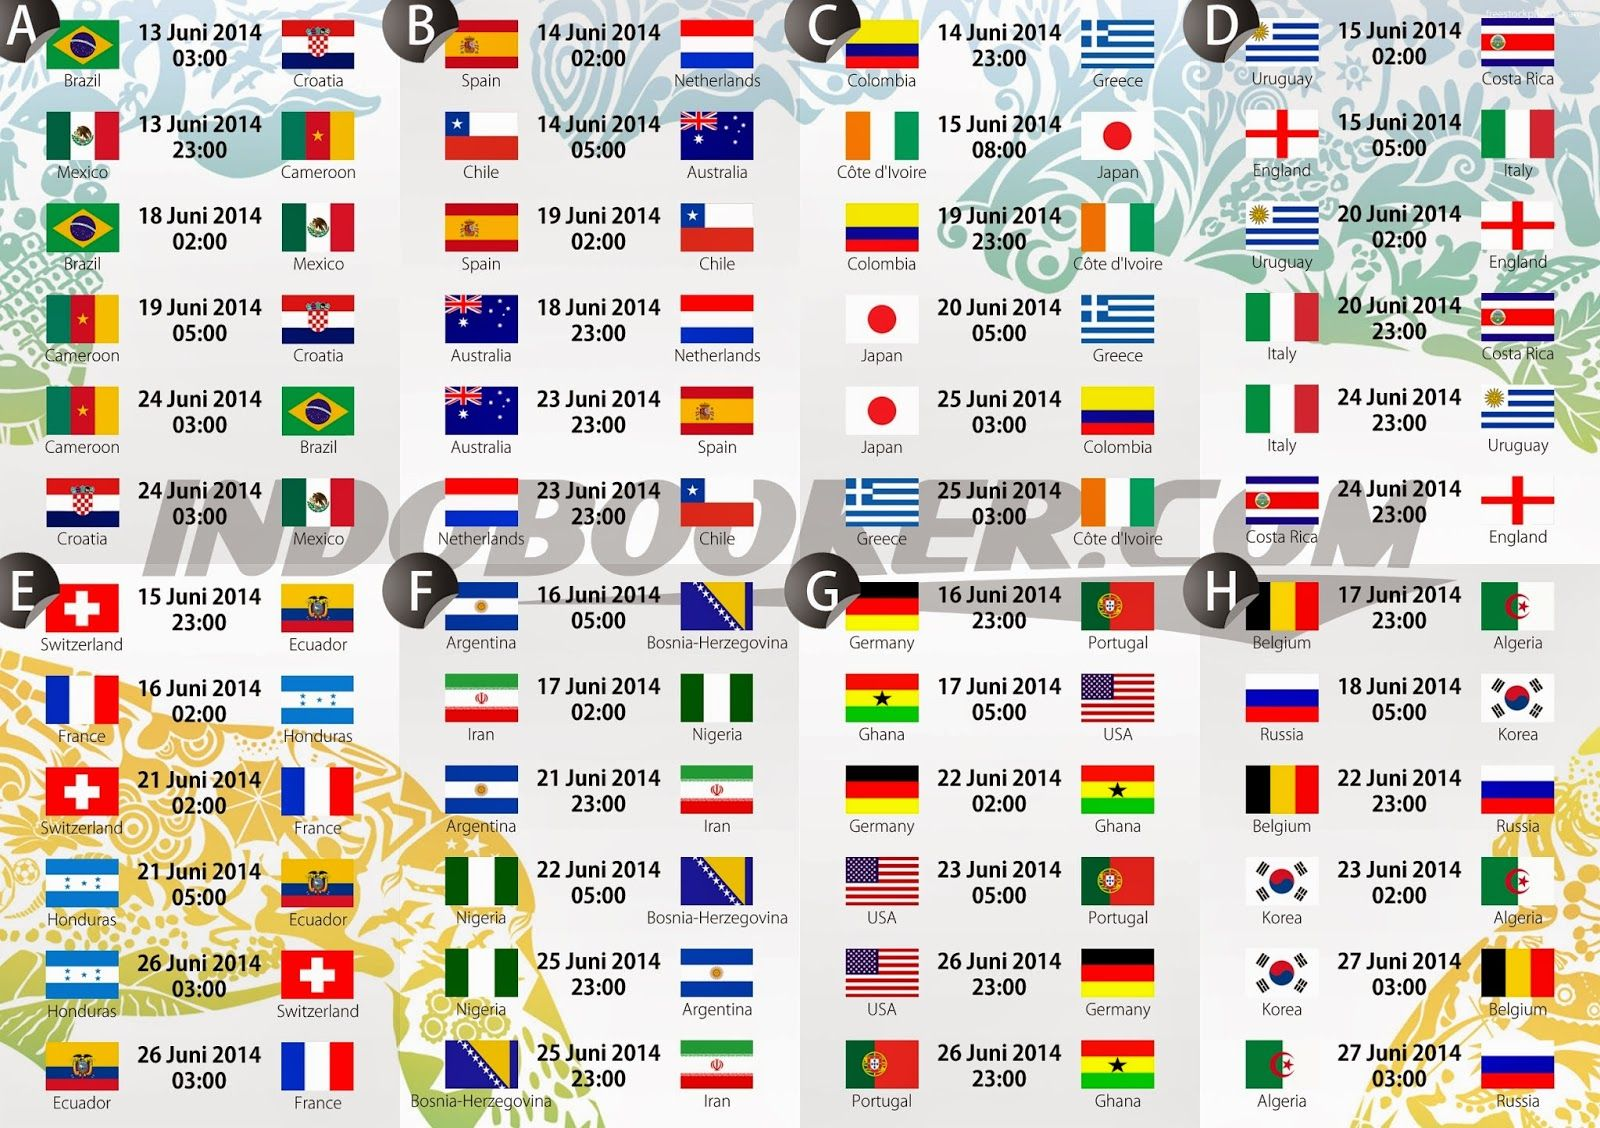 2014 Fifa World Cup Schedule Fixtures Amp Time Table 2 Jpg 1 600 1 128 Pixels World Cup Fixtures World Cup Schedule World Cup Match